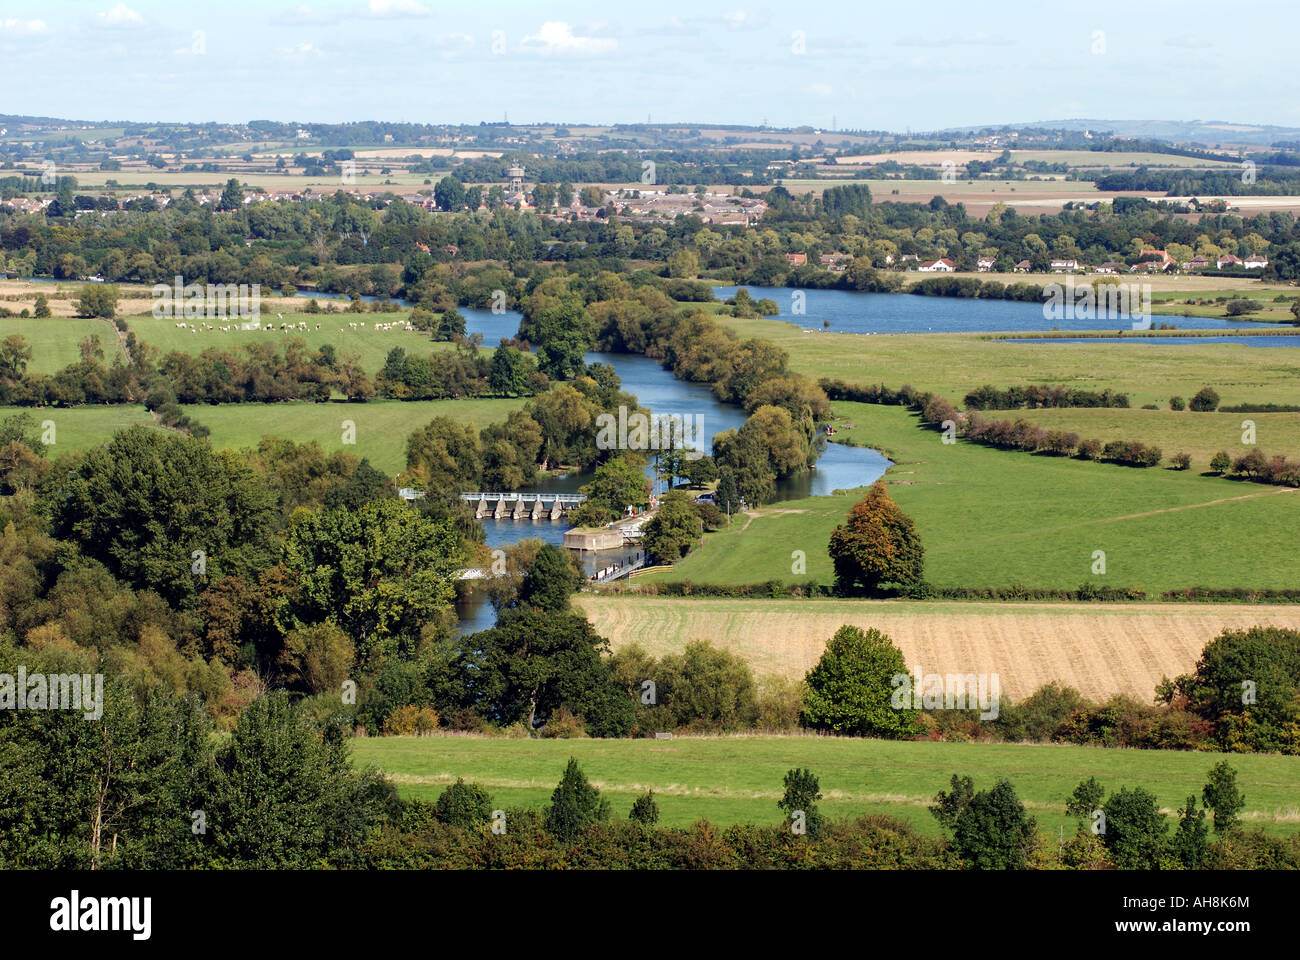 View over River Thames at Day`s Lock from Wittenham Clumps, Oxfordshire, England, UK Stock Photo